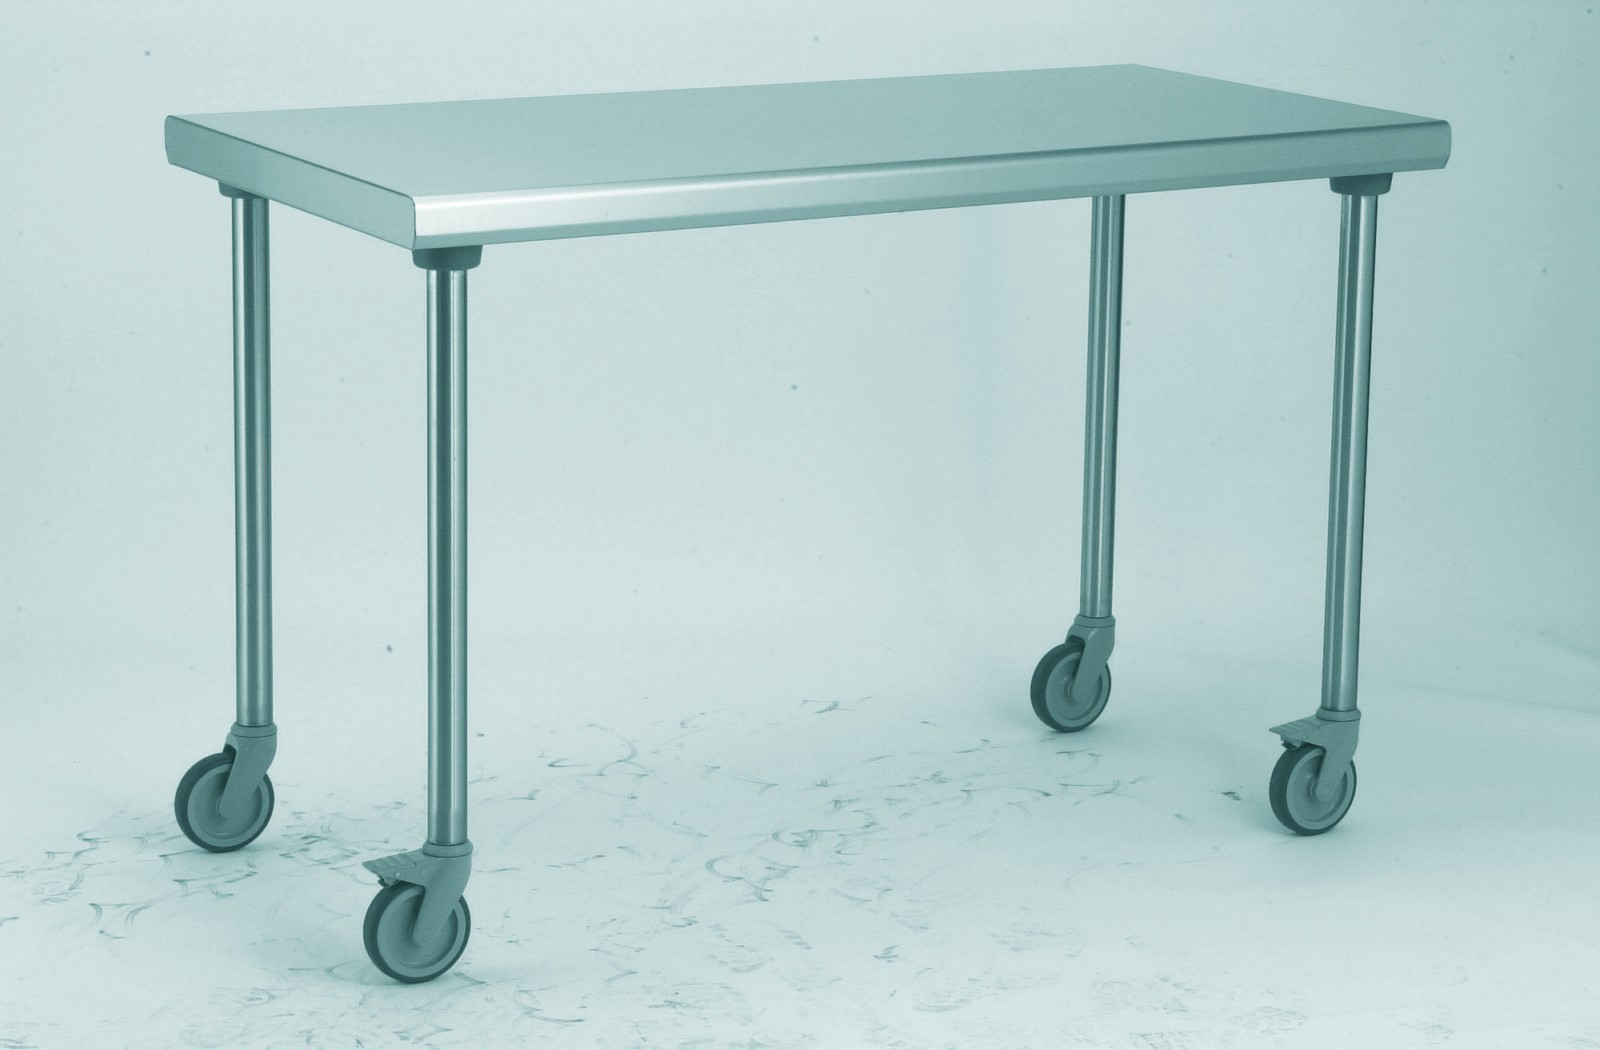 Table Inox Ts 15n Demontable Sur Roues Centrale Pieds Ronds